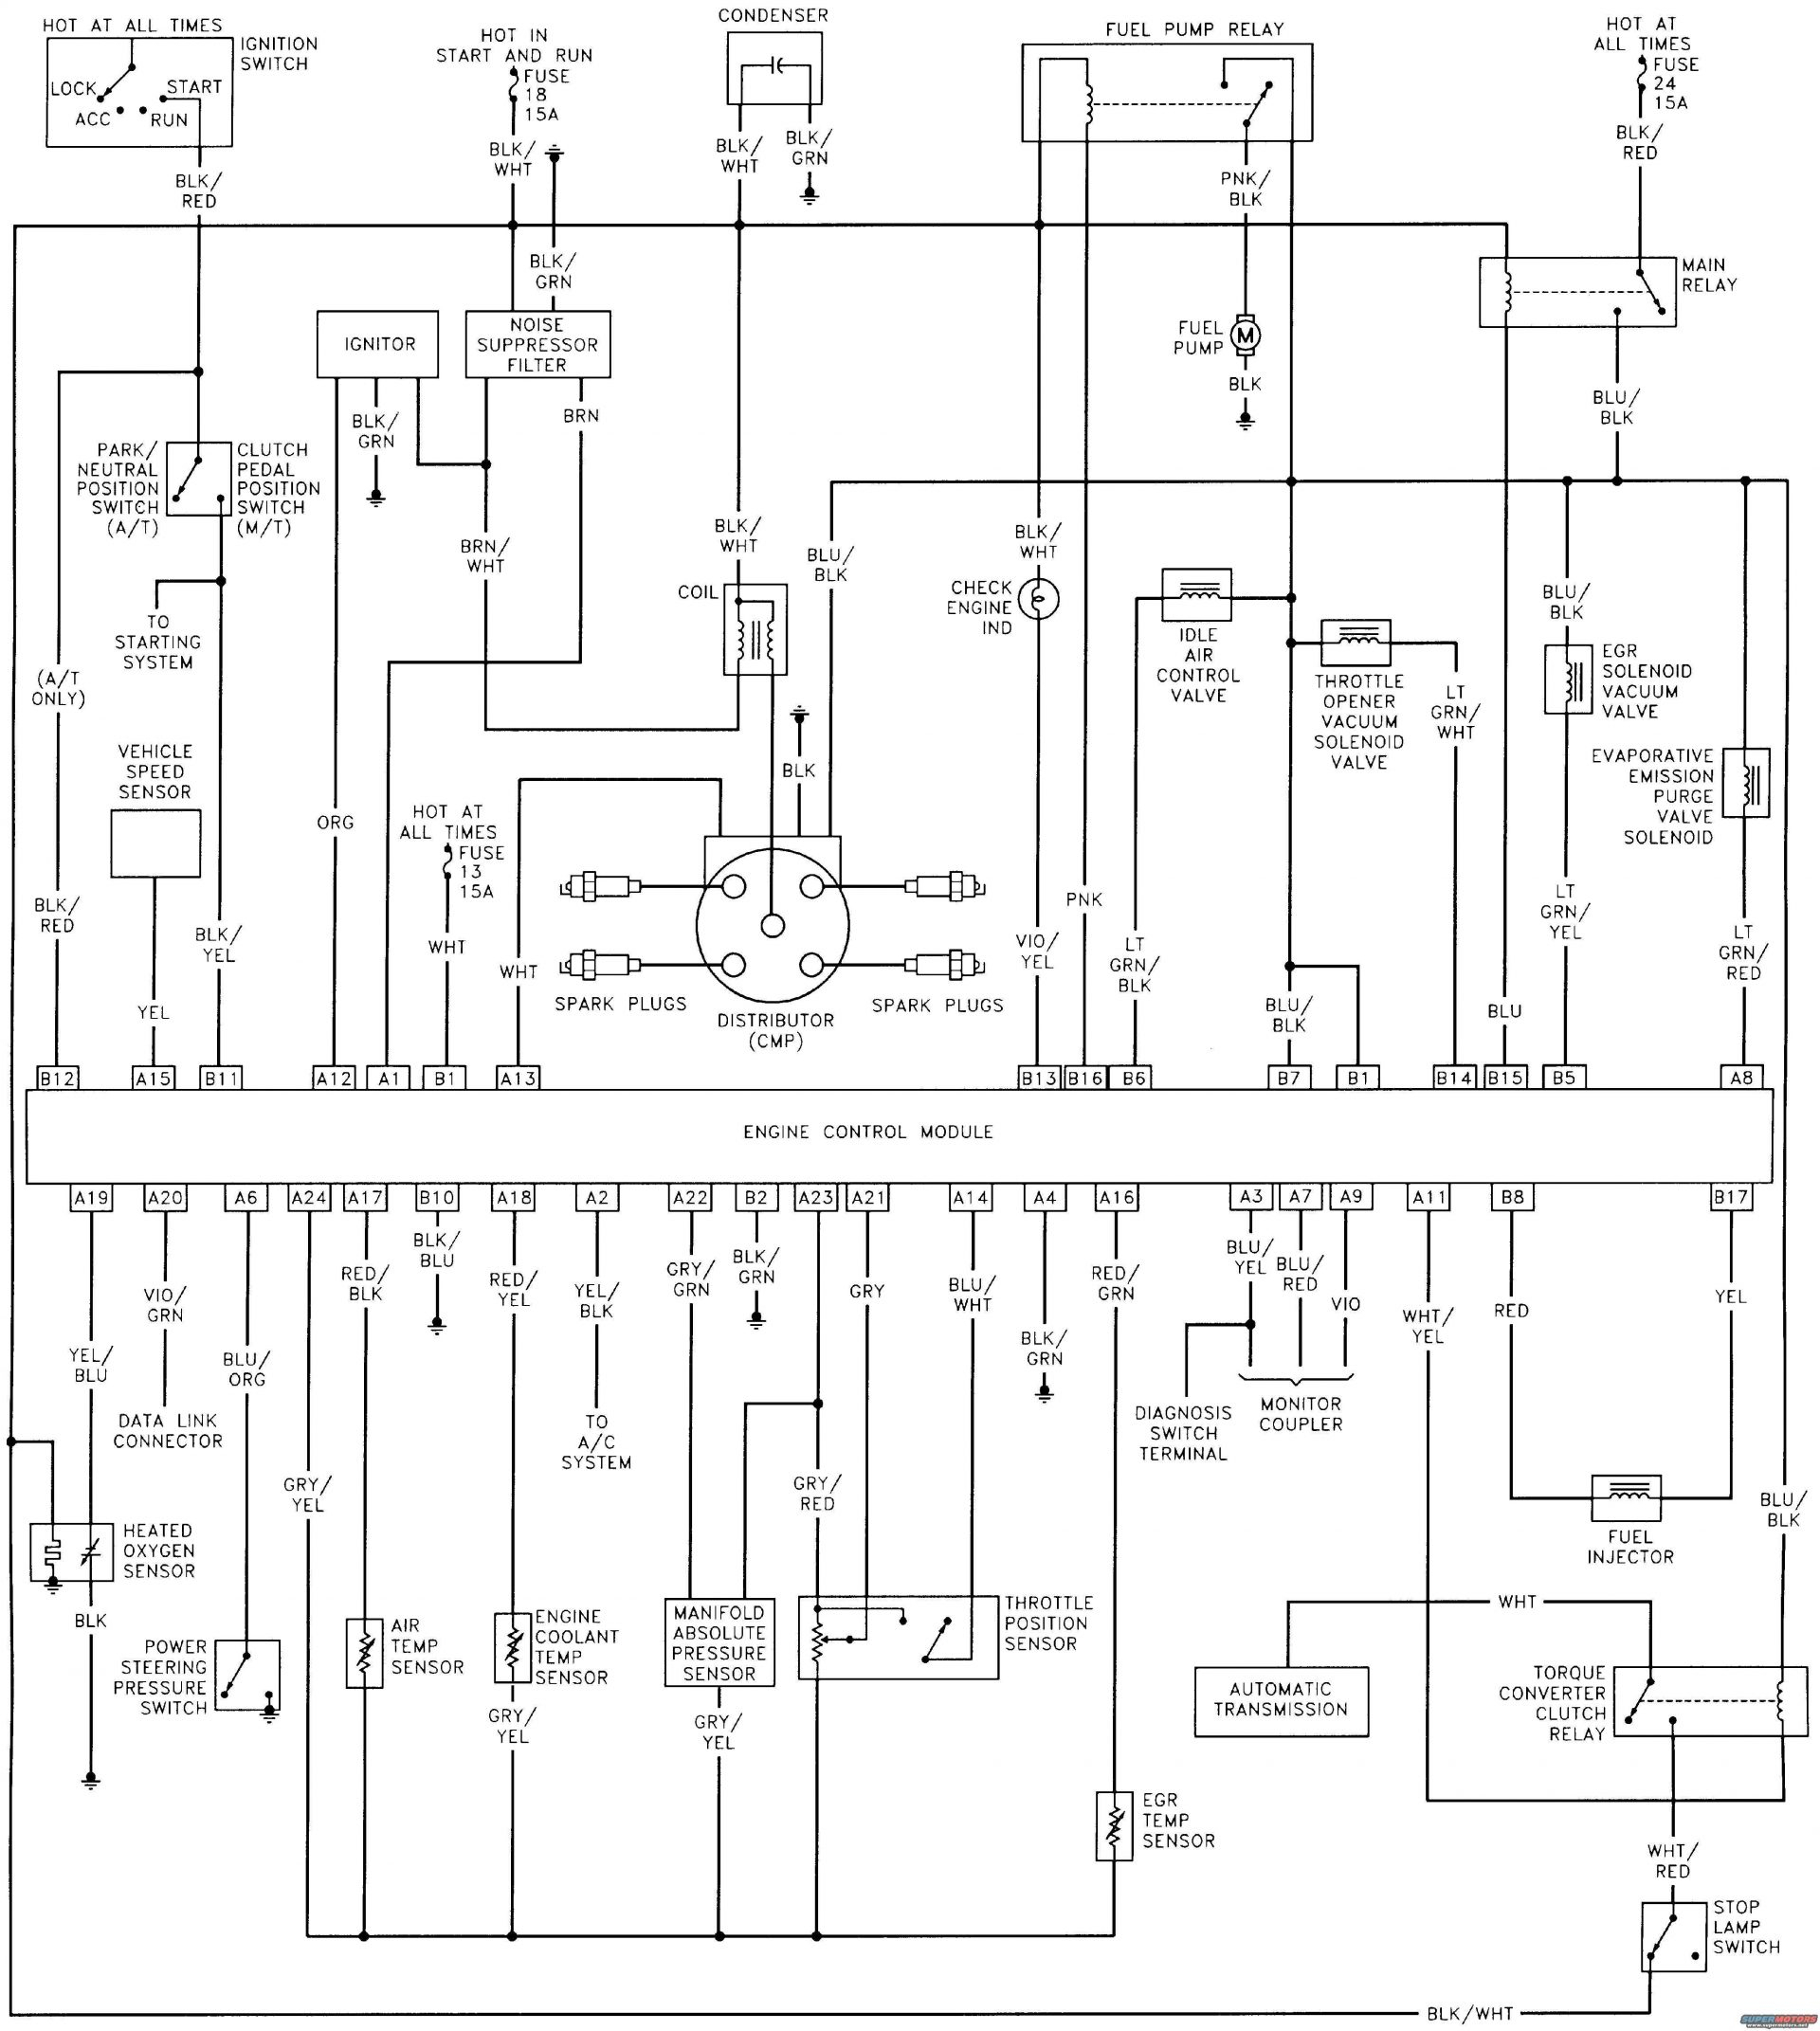 gravely ignition switch wiring diagram wiring diagram services u2022 rh otodiagramwiring today